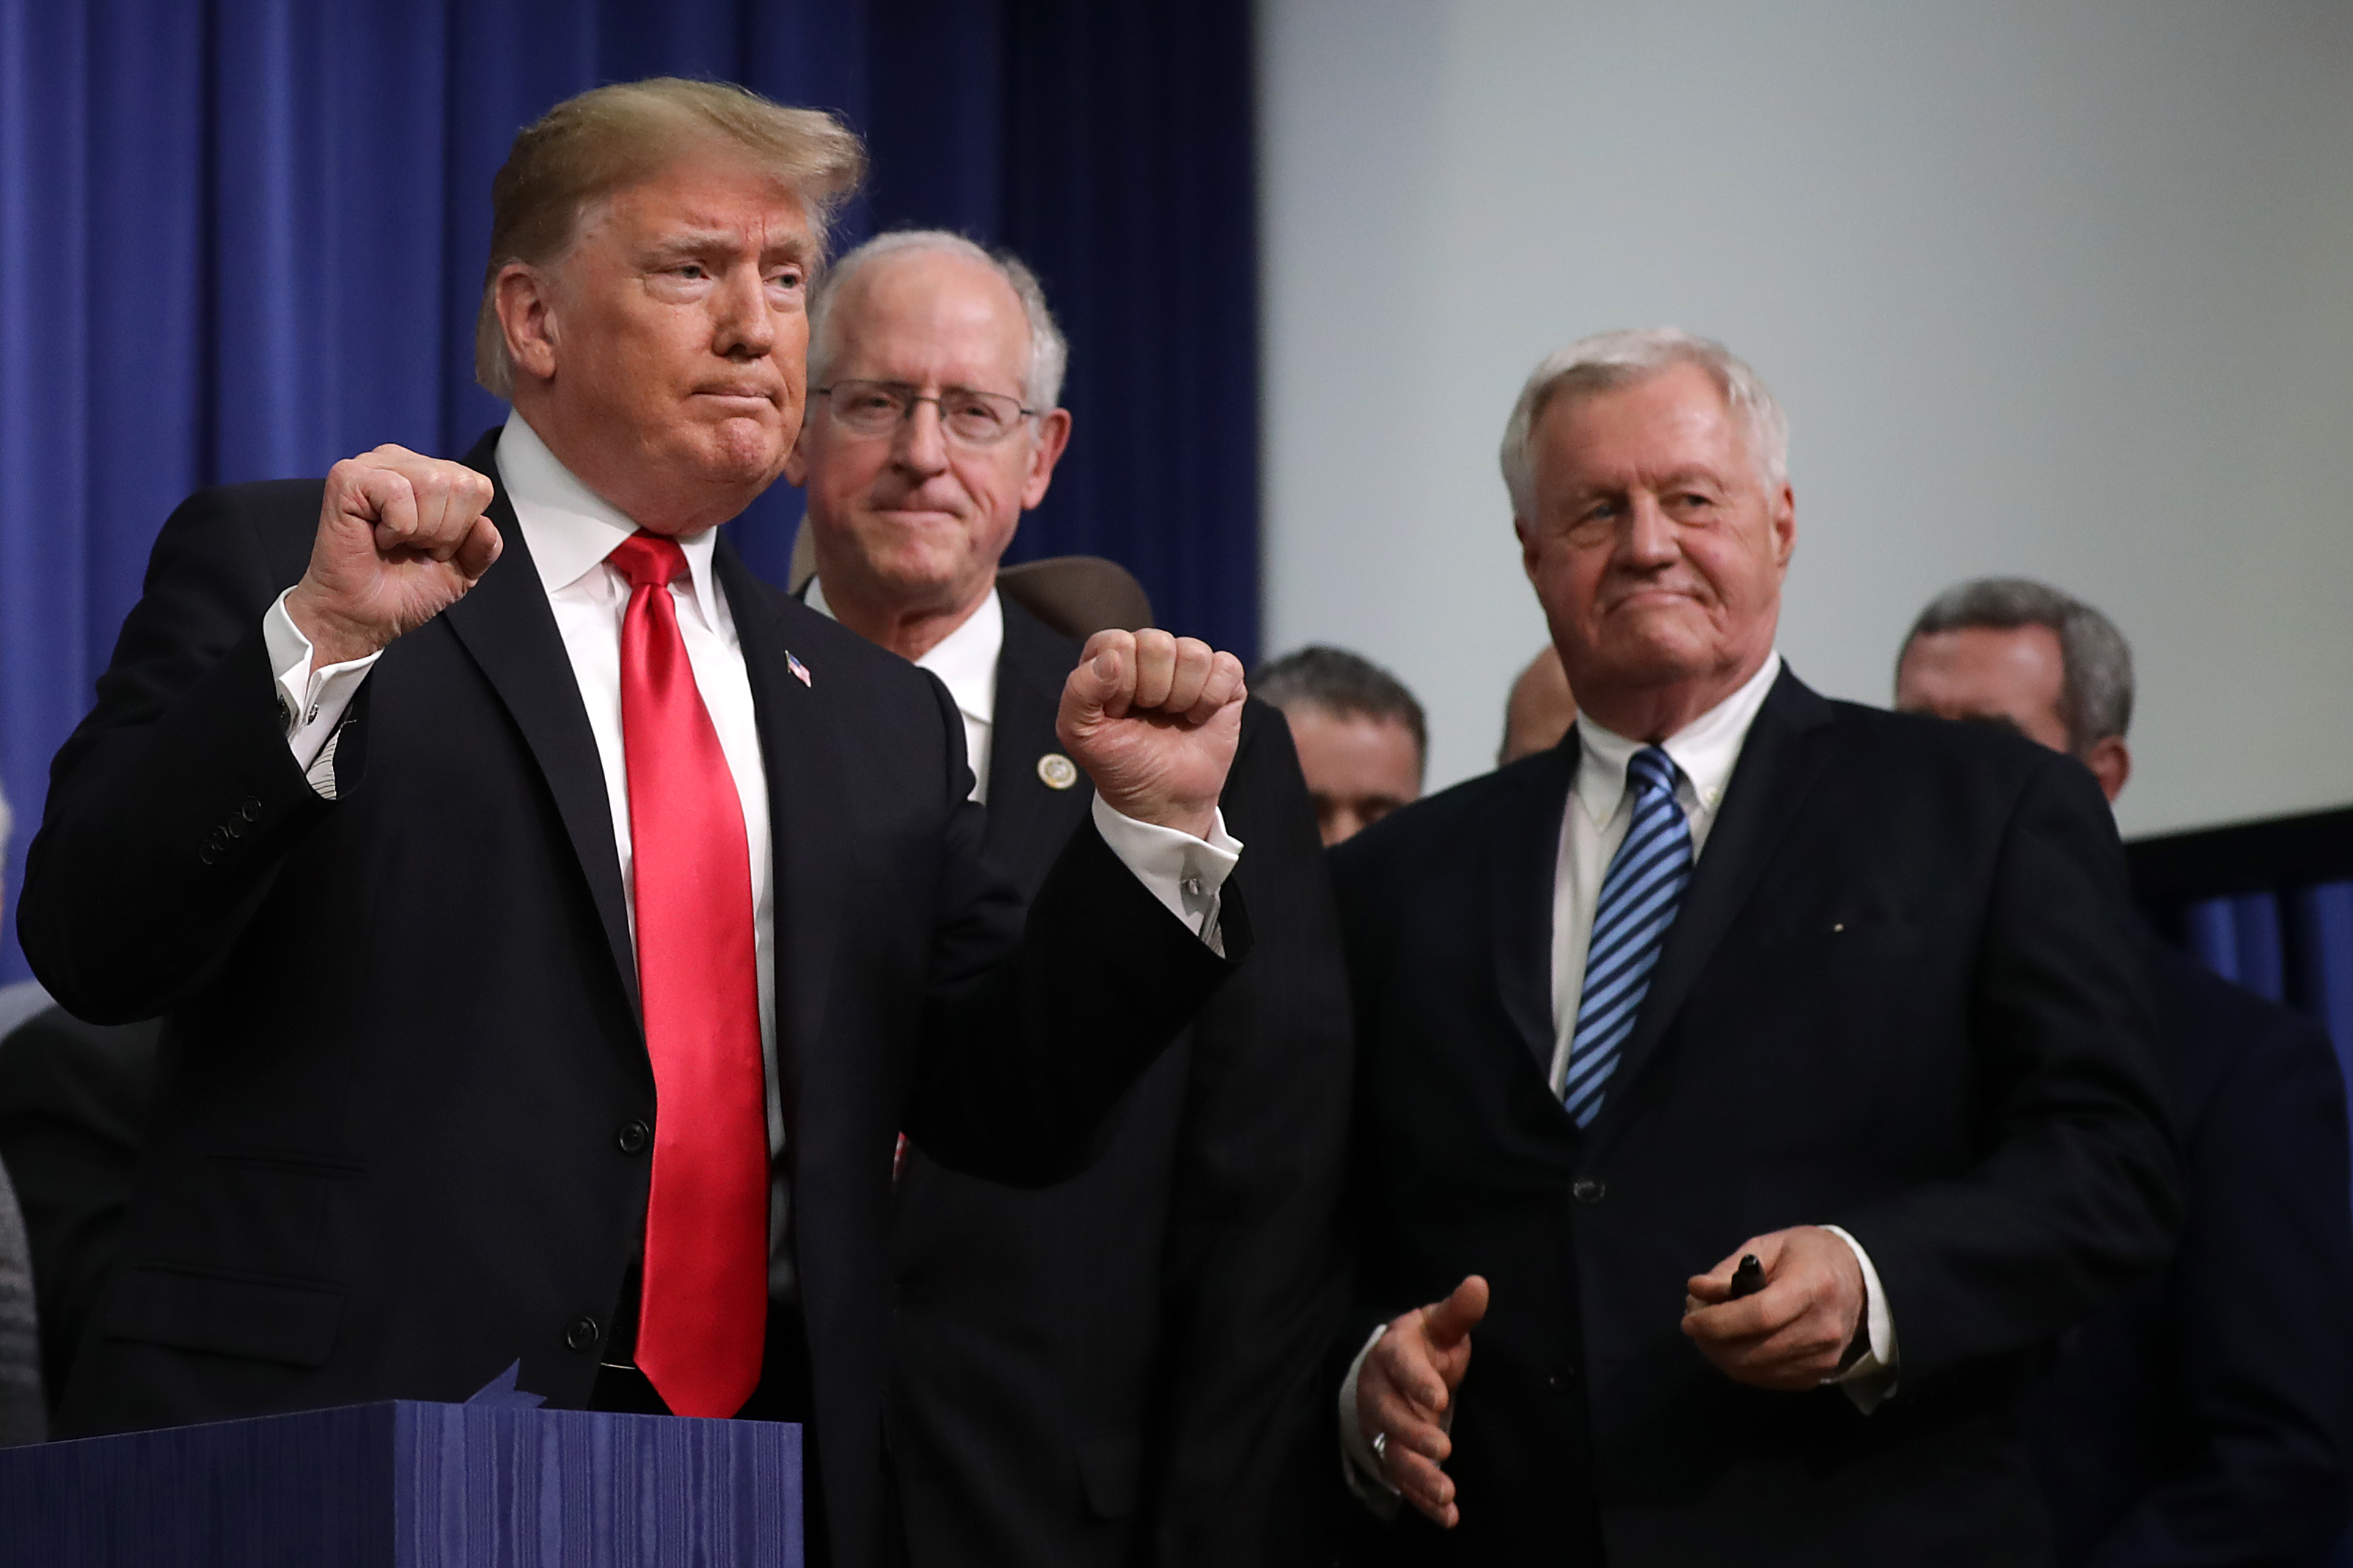 U.S. President Donald Trump (L) pumps his fists after signing the the Agriculture Improvement Act during a ceremony with House Agriculture Committee Chairman Mike Conaway (2nd L) and ranking member Rep. Colin Peterson in the South Court Auditorium of the Eisenhower Executive Office Building December 20, 2018 in Washington, DC. (Photo by Chip Somodevilla/Getty Images)